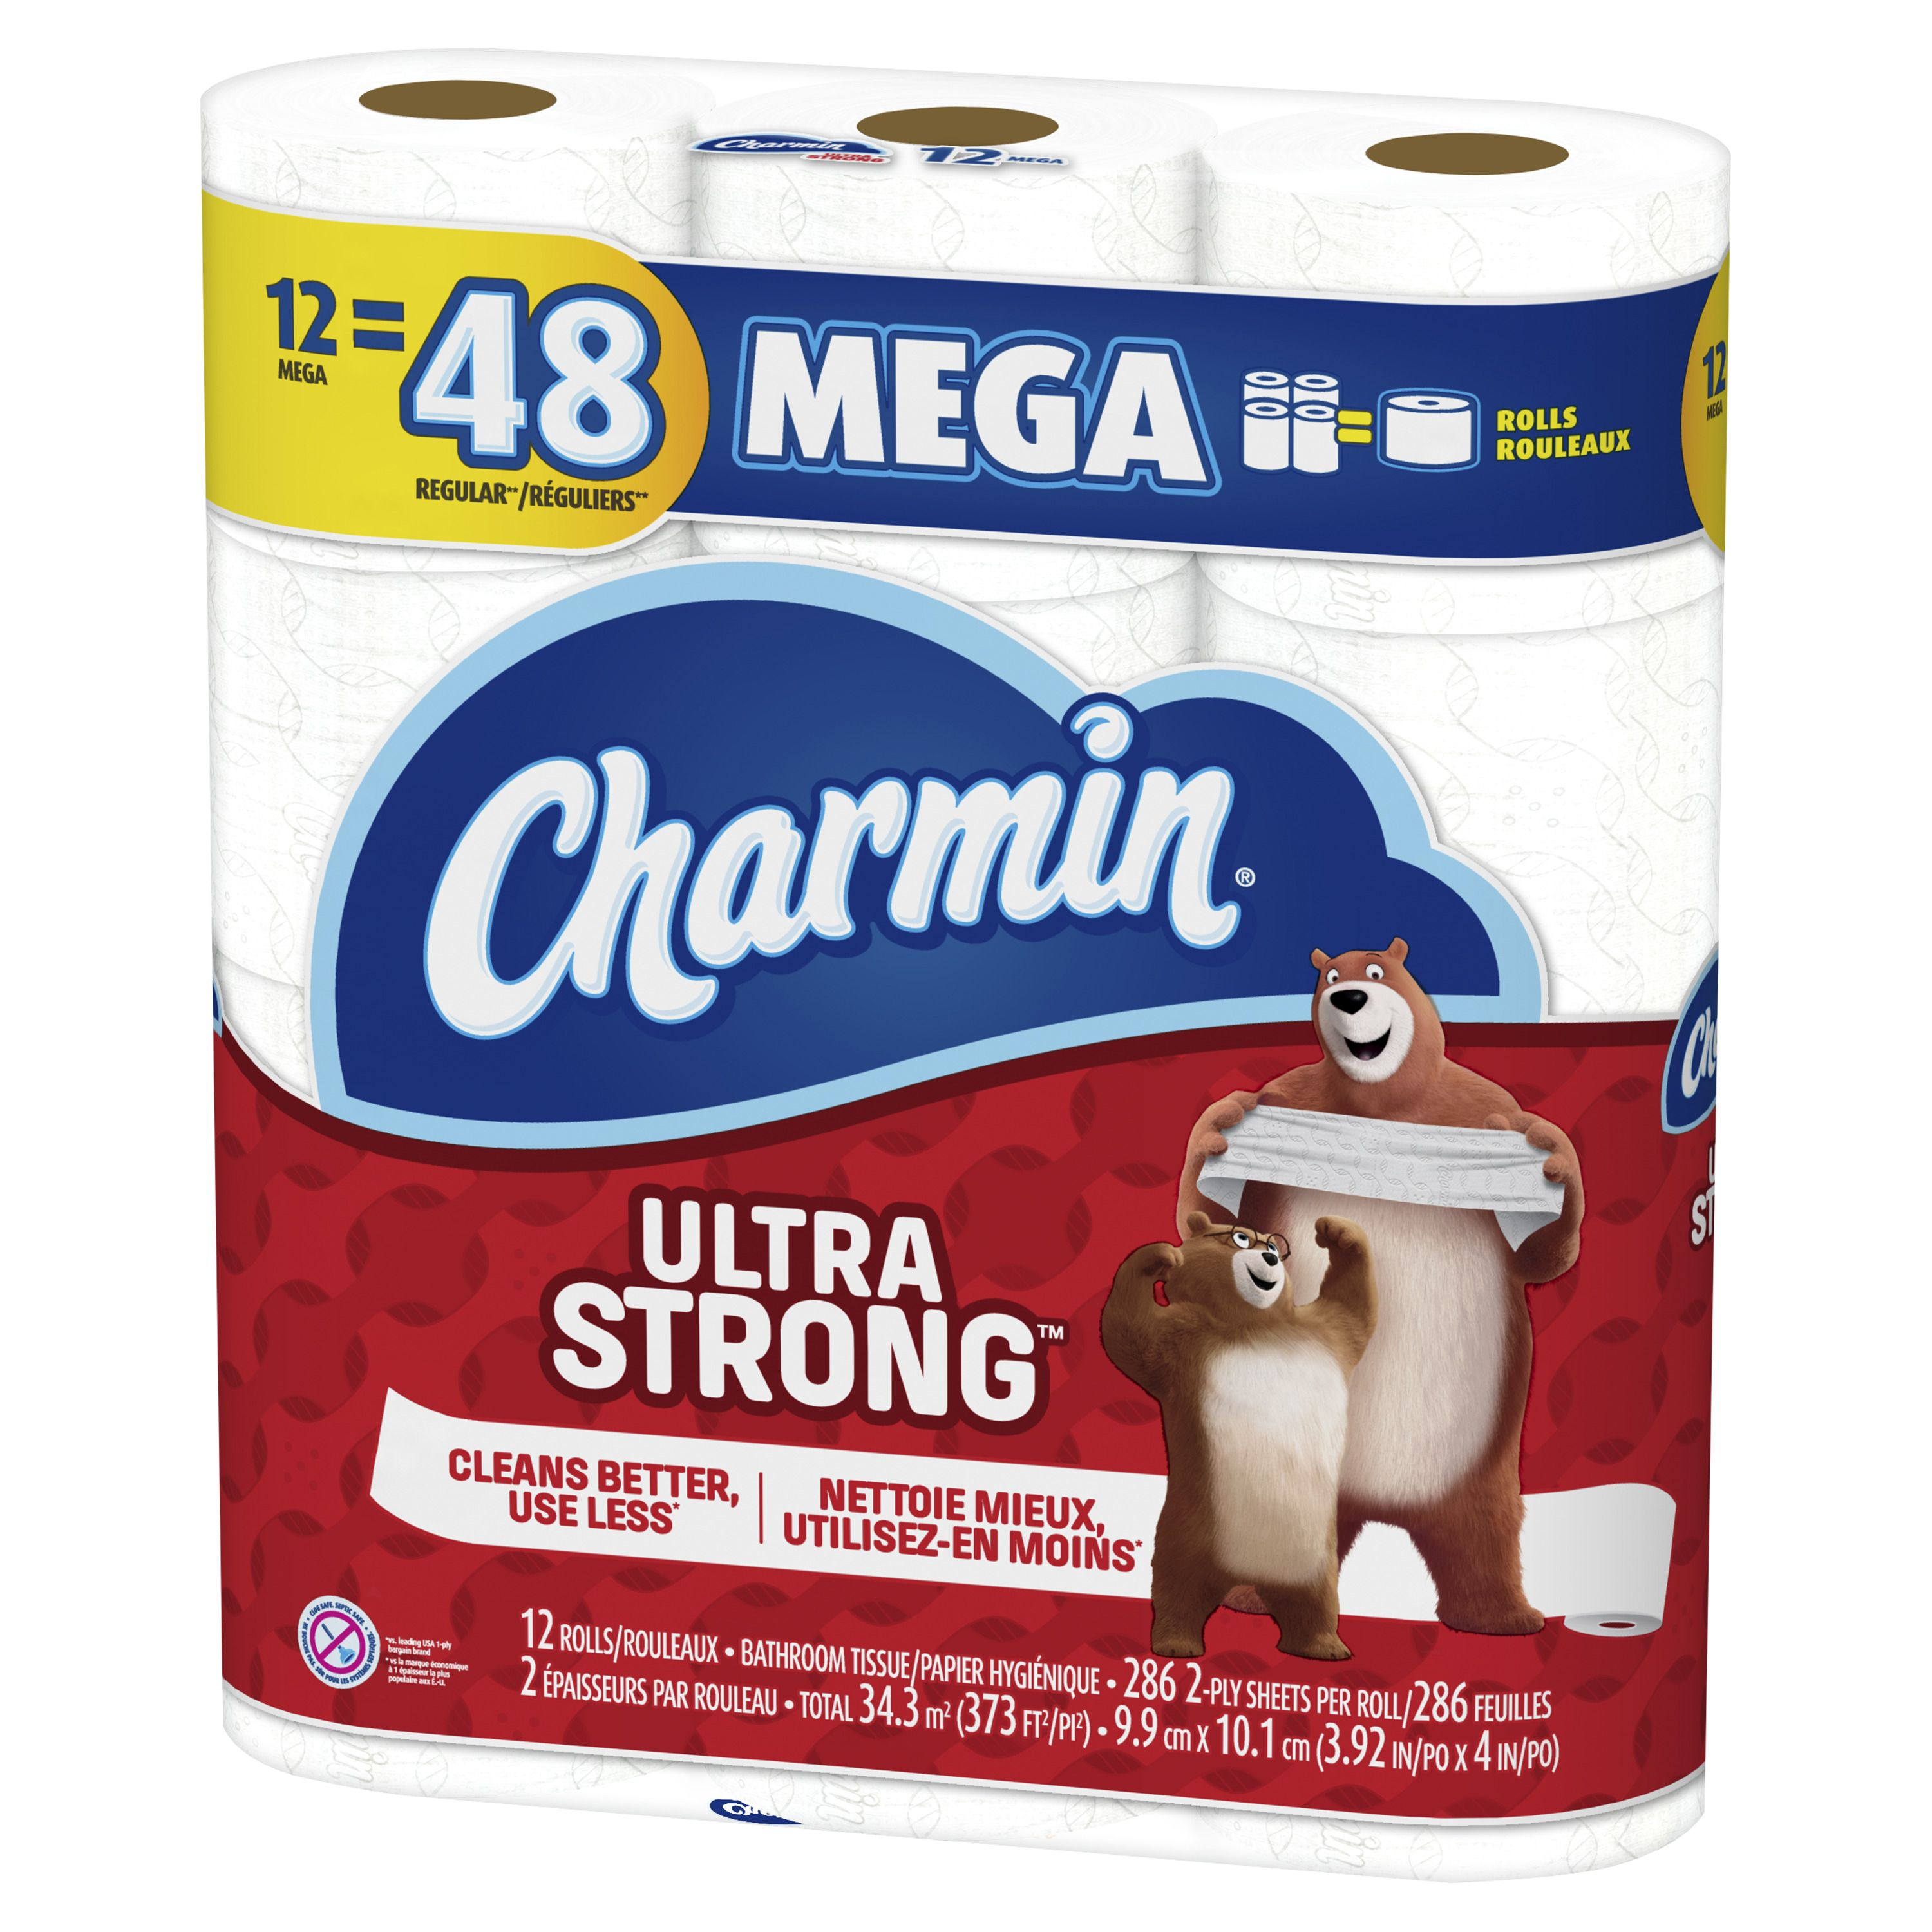 Charmin Ultra Strong Toilet Paper 12 Mega Roll 286 Sheets Per Roll Ad Toilet Ad Paper Strong Charmin Best Toilet Paper Strong